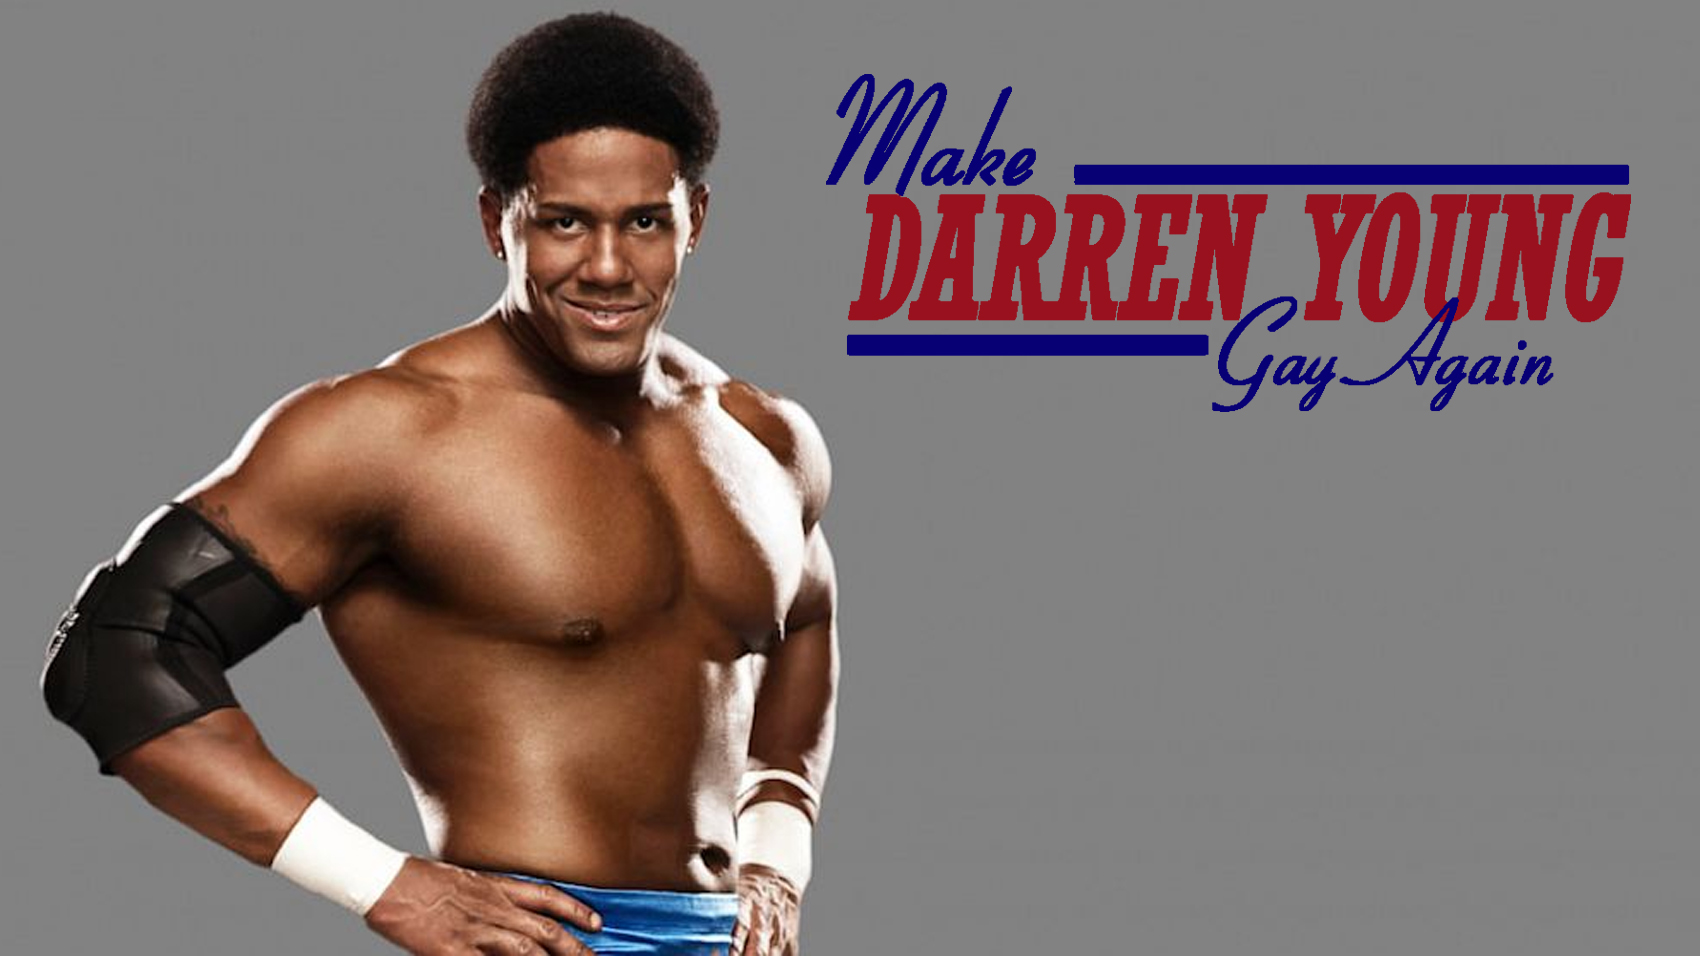 Last Week Wwe Announced That It Had Come To Terms On The Release Of Former Tag Team Champion Darren Young The News Was Less Shocking Than The Surprise